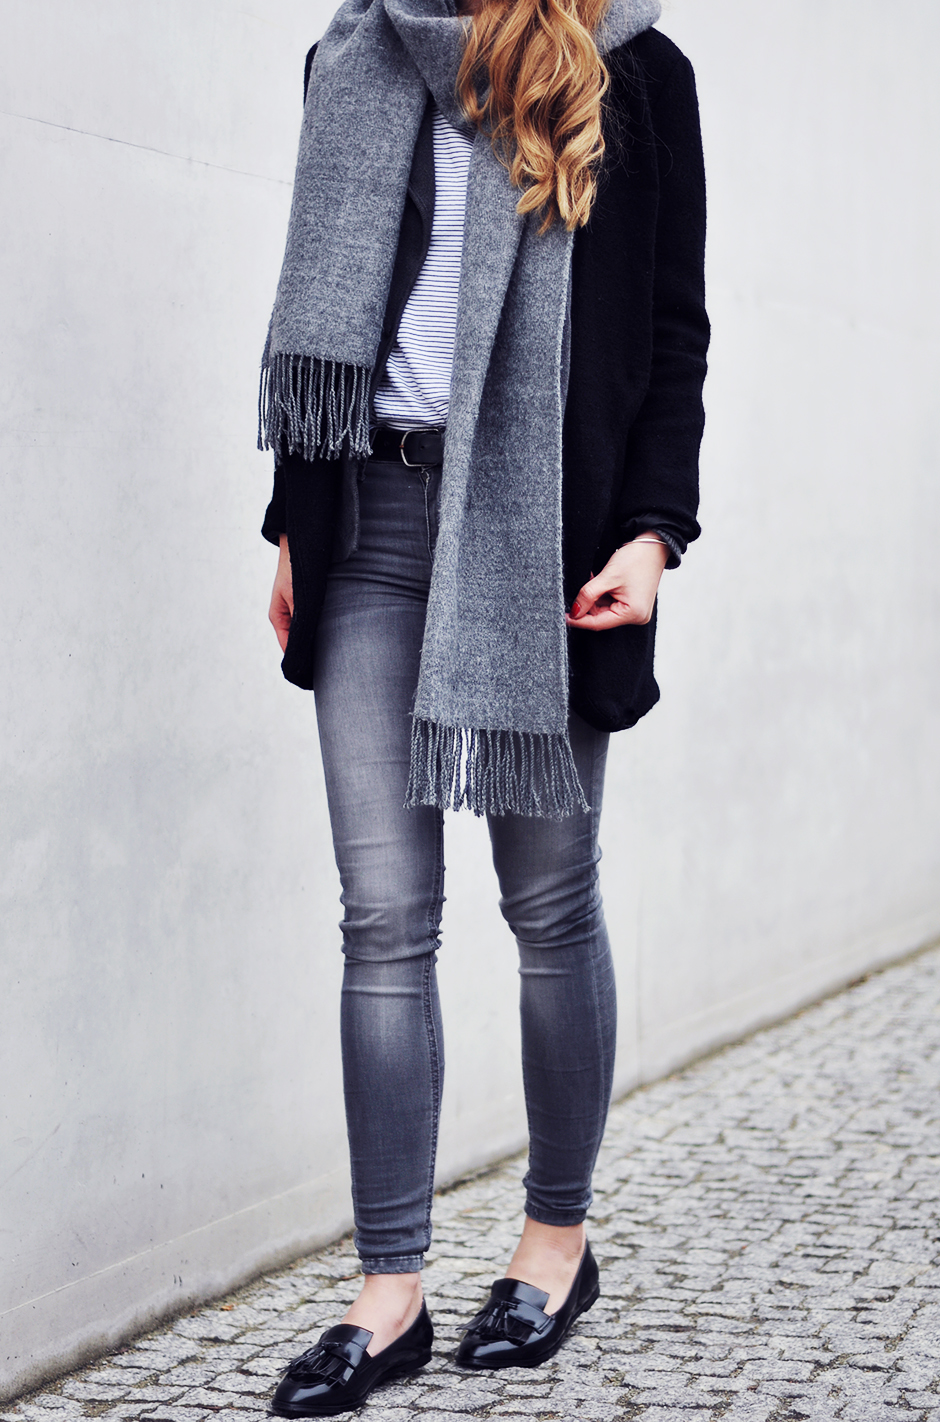 For a stylish and cosy winter outfit, try wearing an oversized scarf such as this one worn by Iga Wysocka. Not only will it keep you warm, but a scarf will also add dimension and style to your look. Coat: Romwe, Tee/Jeans/Bag: Zara, Scarf/Shoes: Topshop.